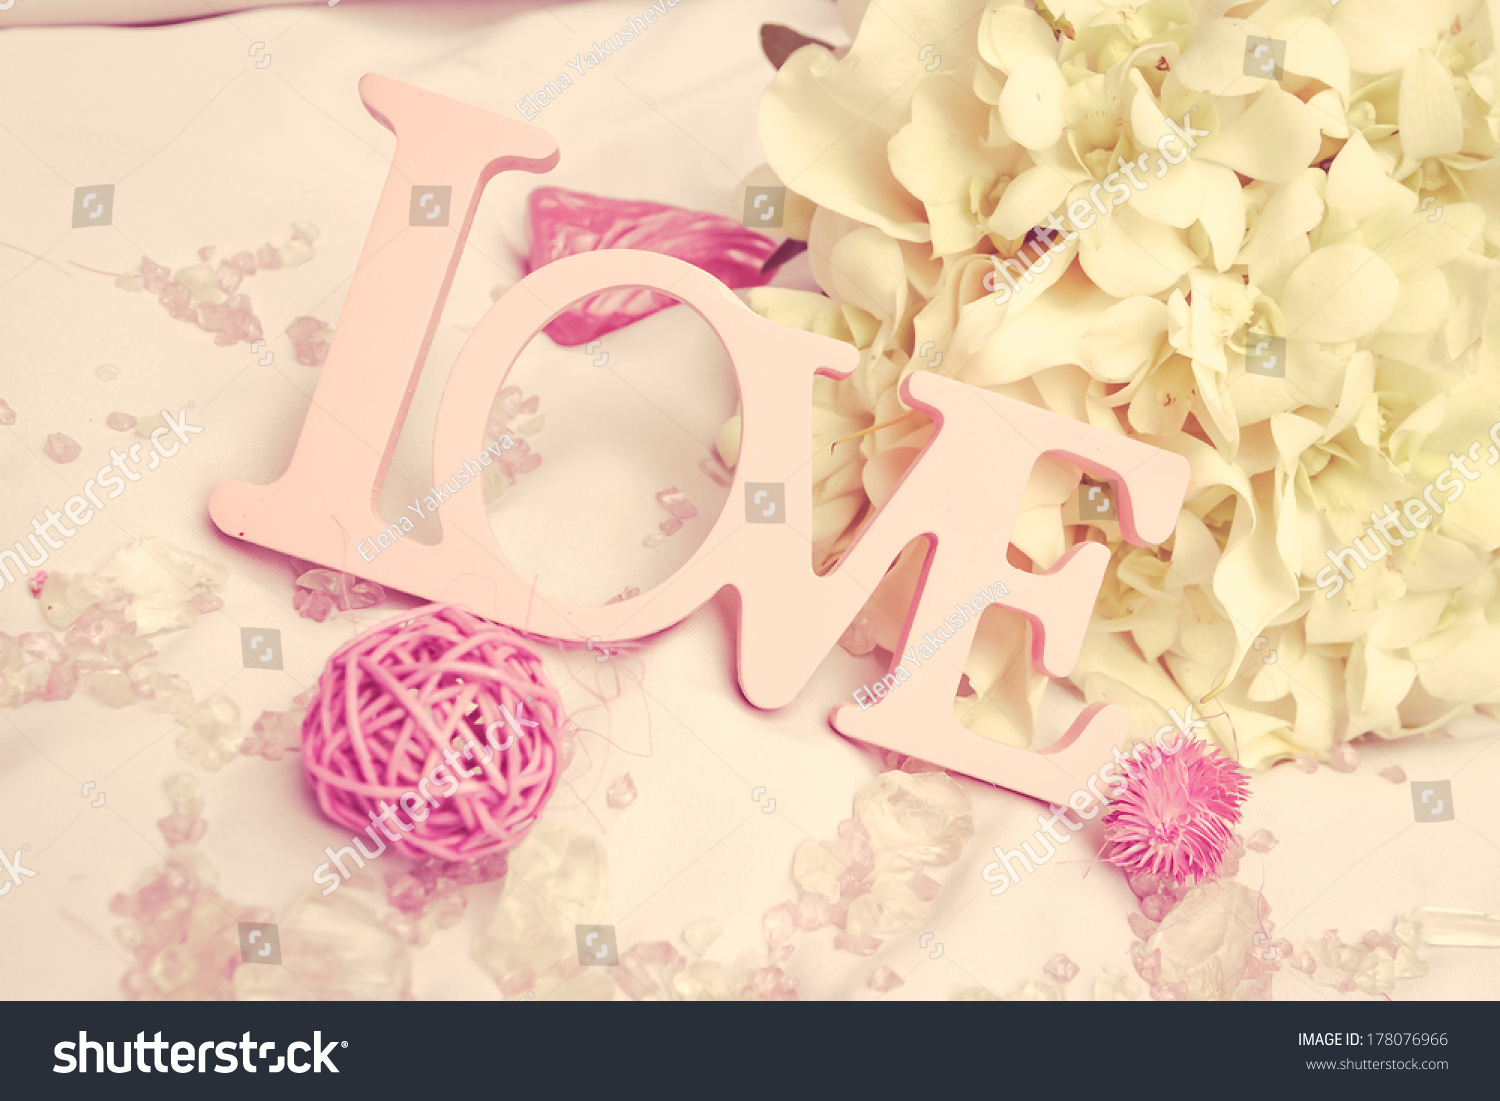 Wedding decoration details stock photo 178076966 shutterstock wedding decoration details junglespirit Gallery